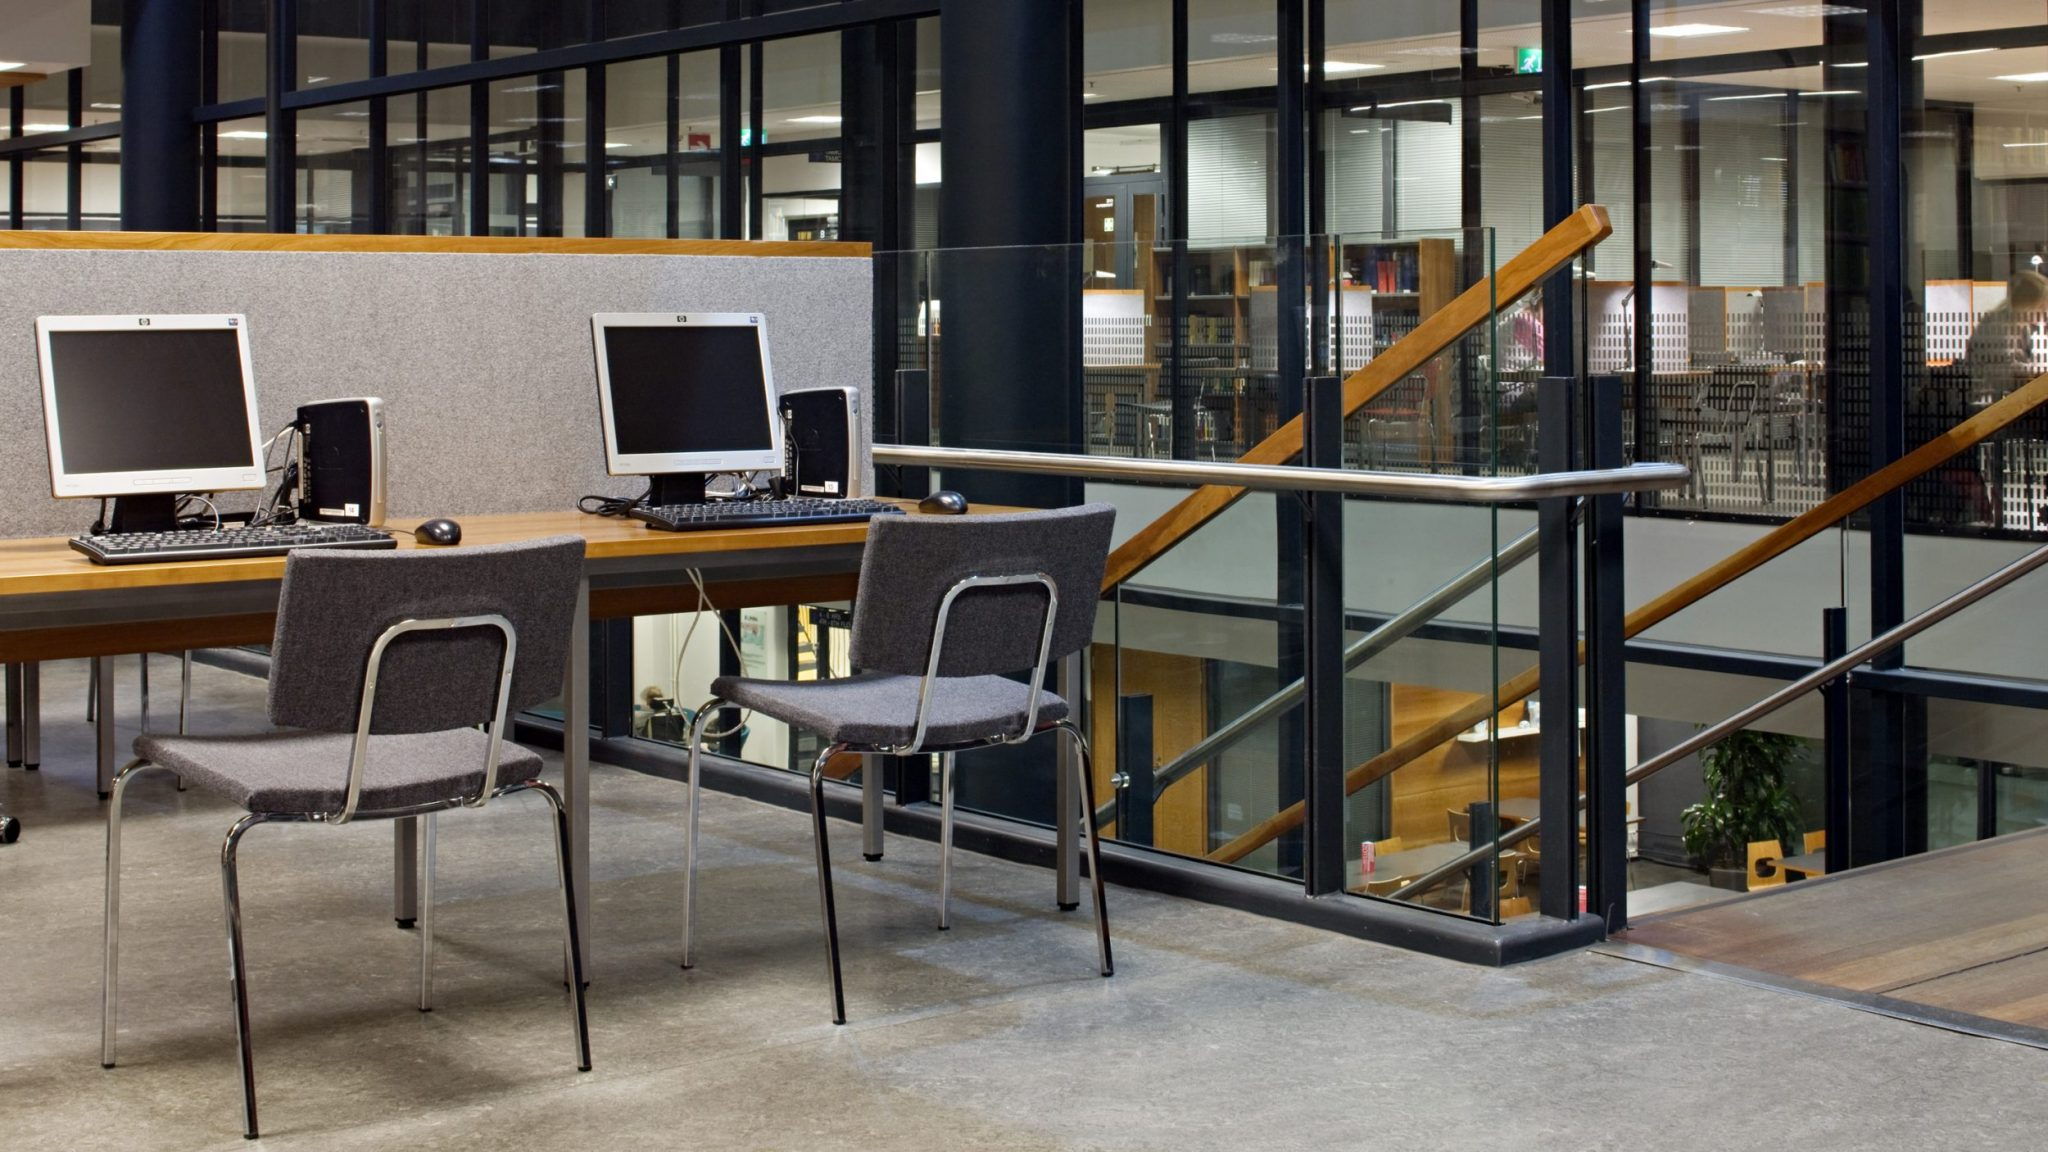 University-of-Tampere-library-Tampere-GI-project-1